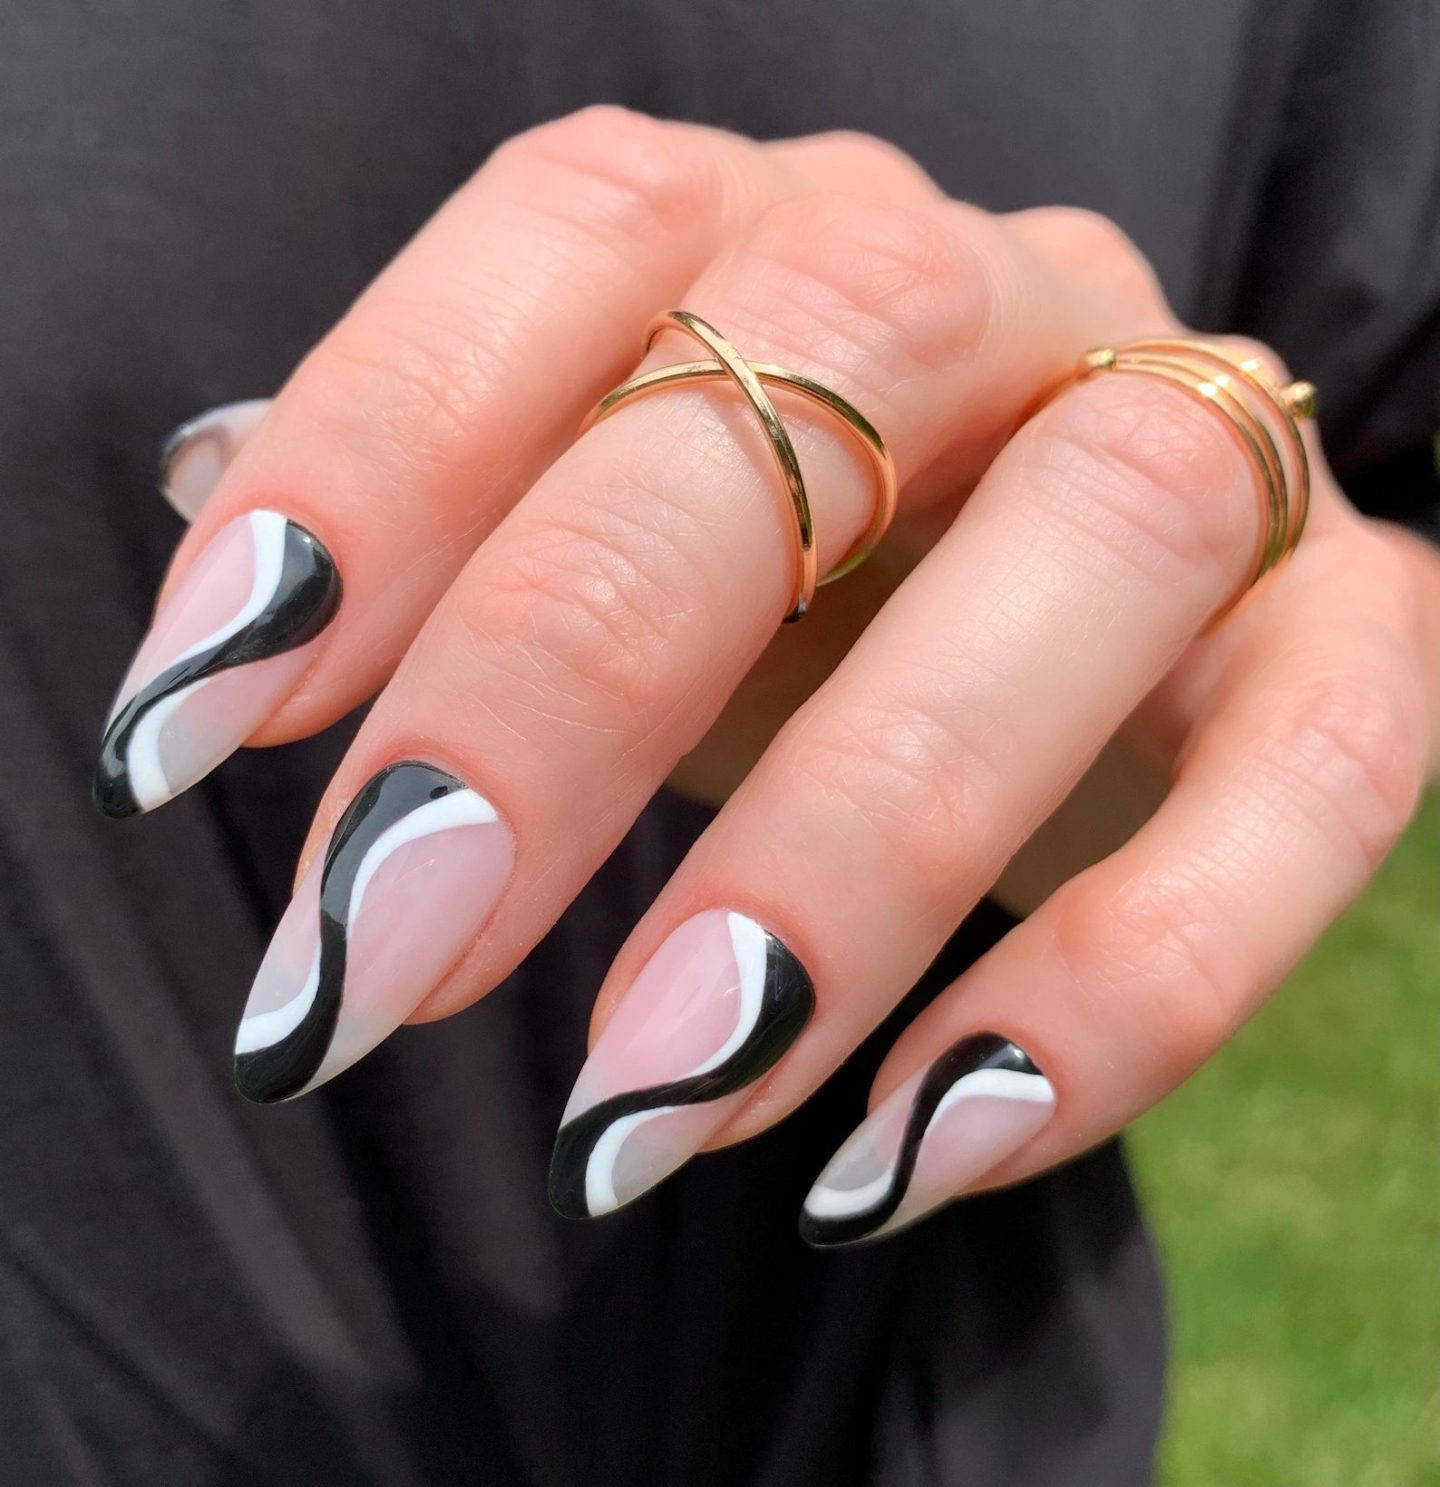 Cute black and white swirl nails in almond shape